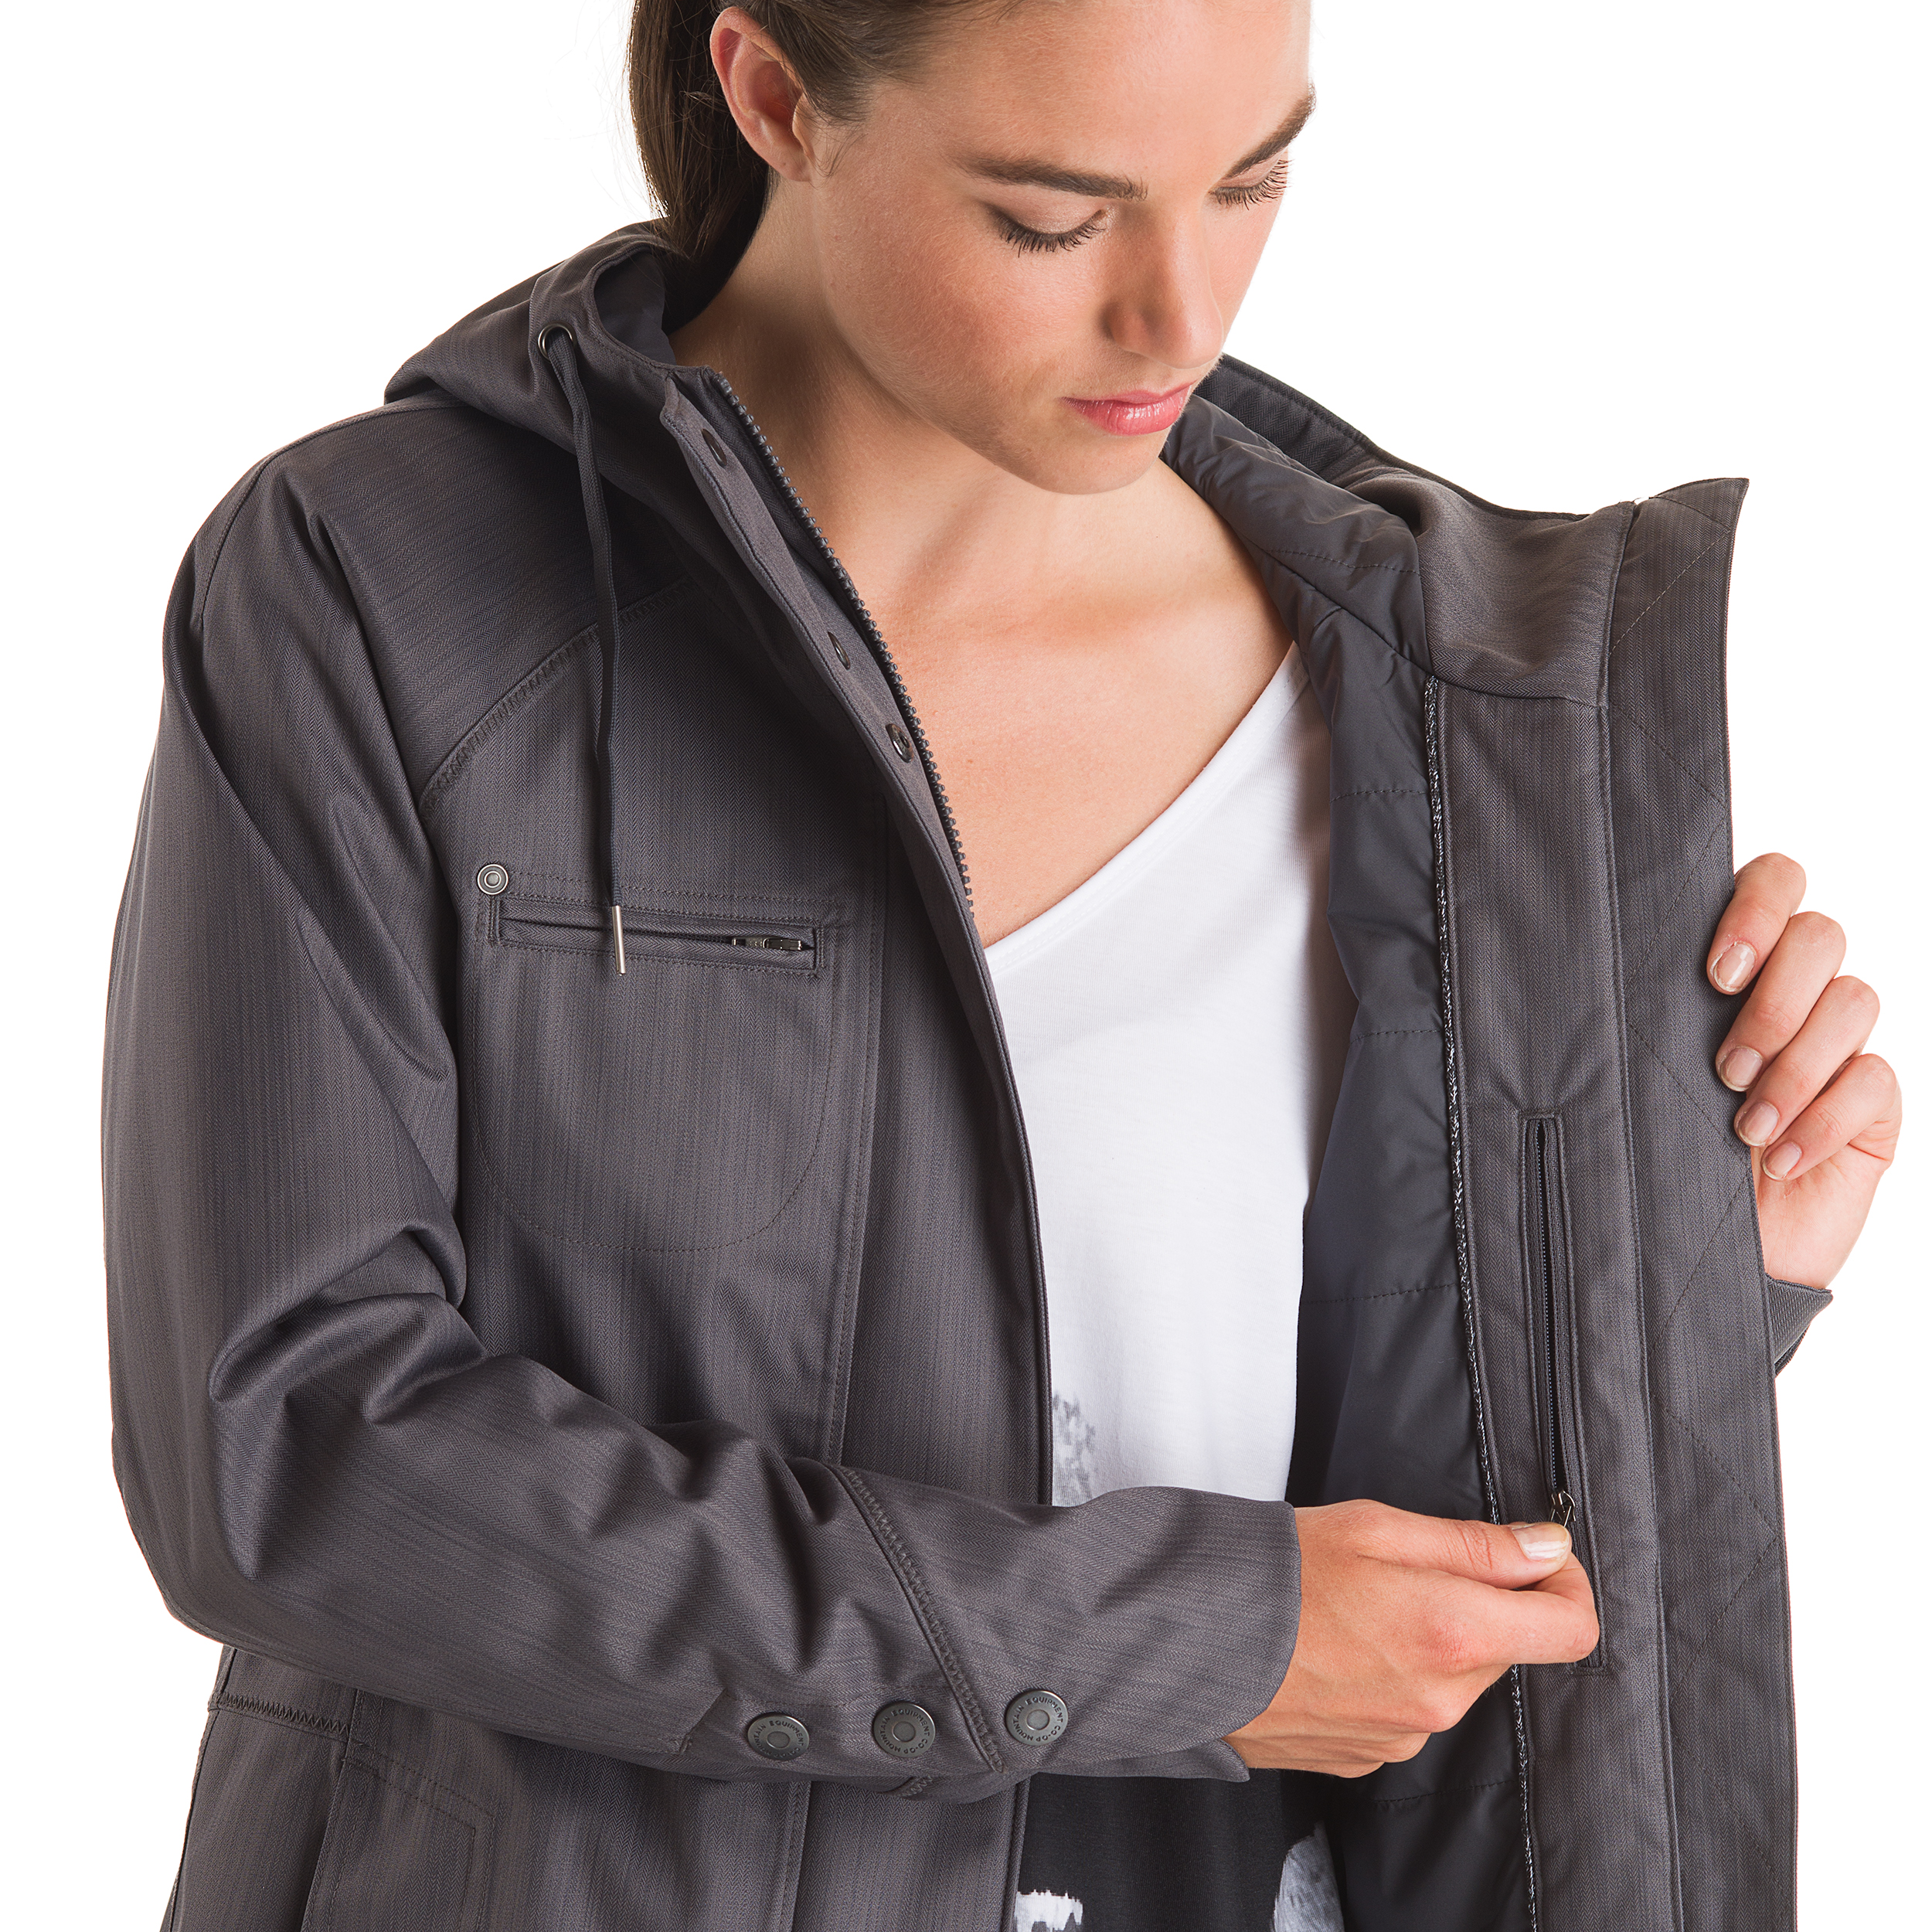 rocky sale quilt womens coat quilted large mobility extralarge athletic s women jacket